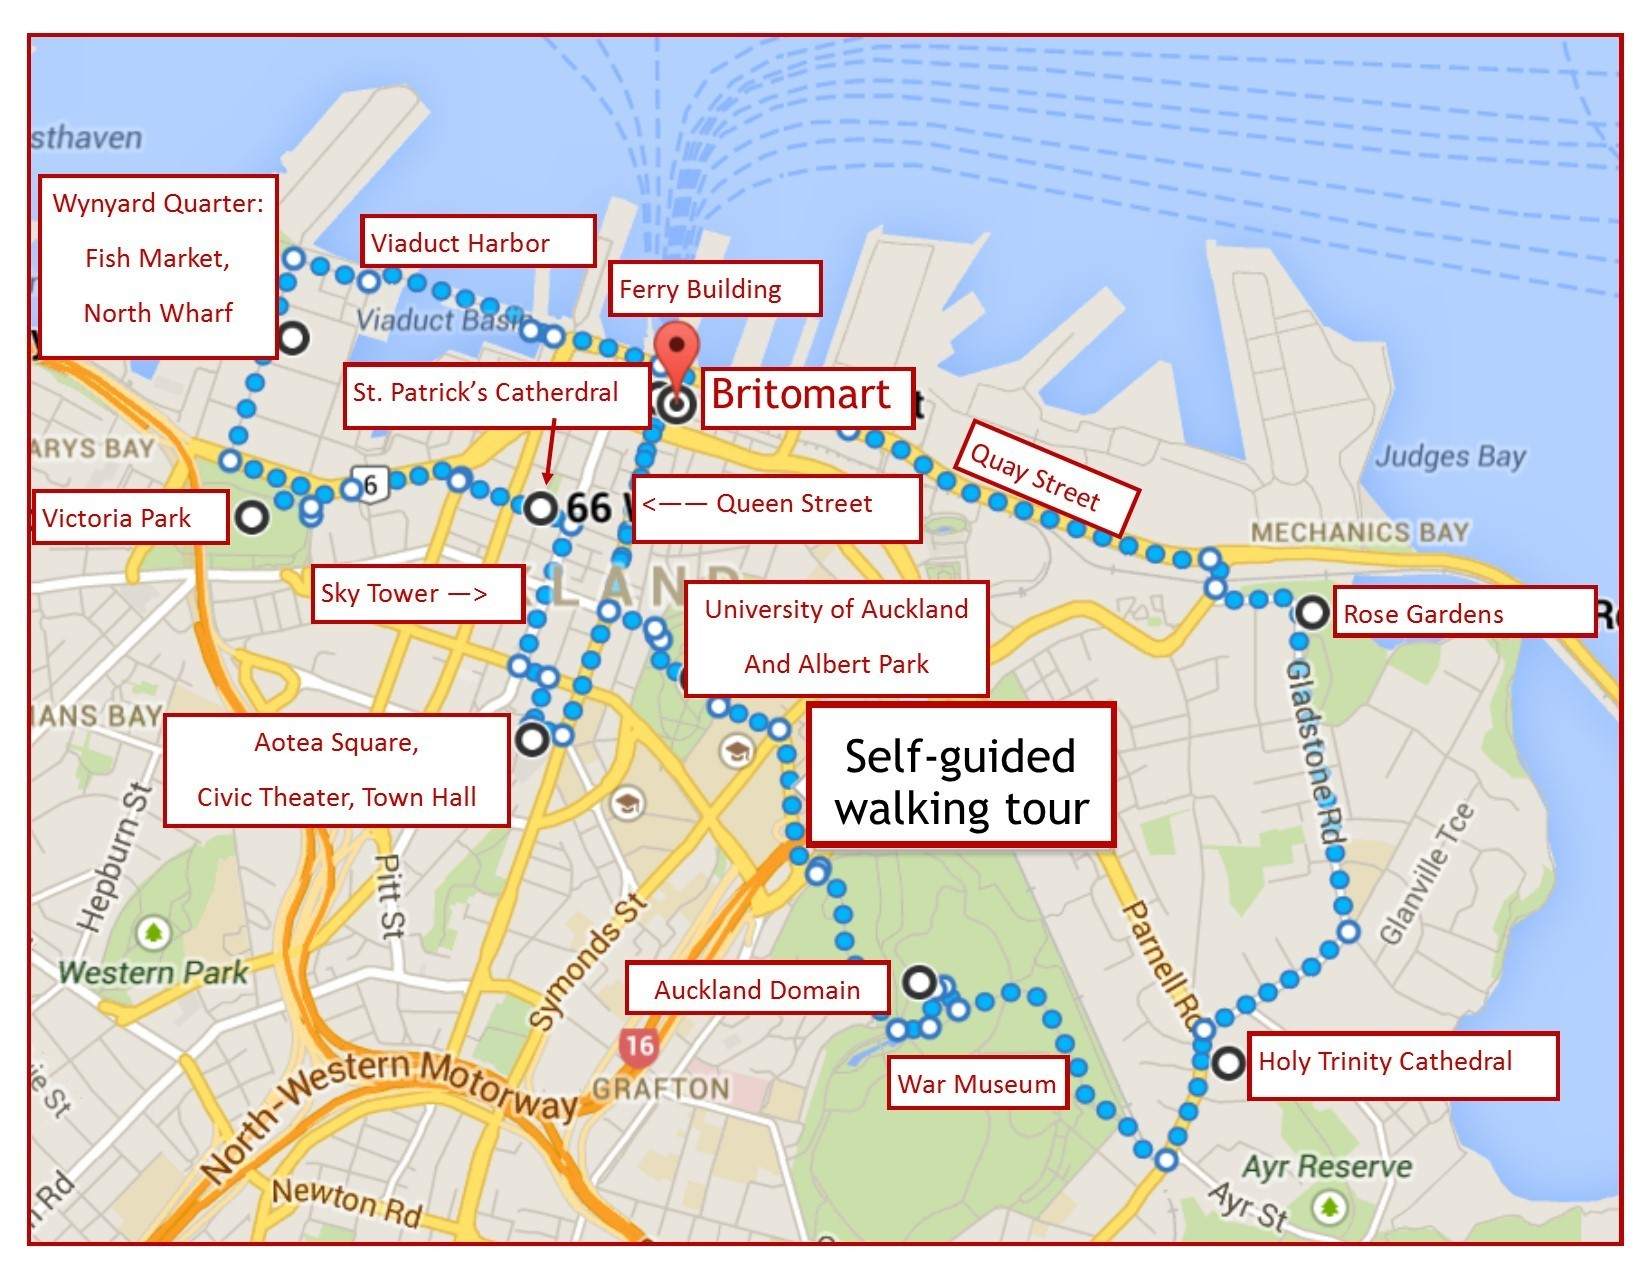 New Zealand Sightseeing Map.One Day In Auckland Itinerary Self Guided Walking Tour A Trip To